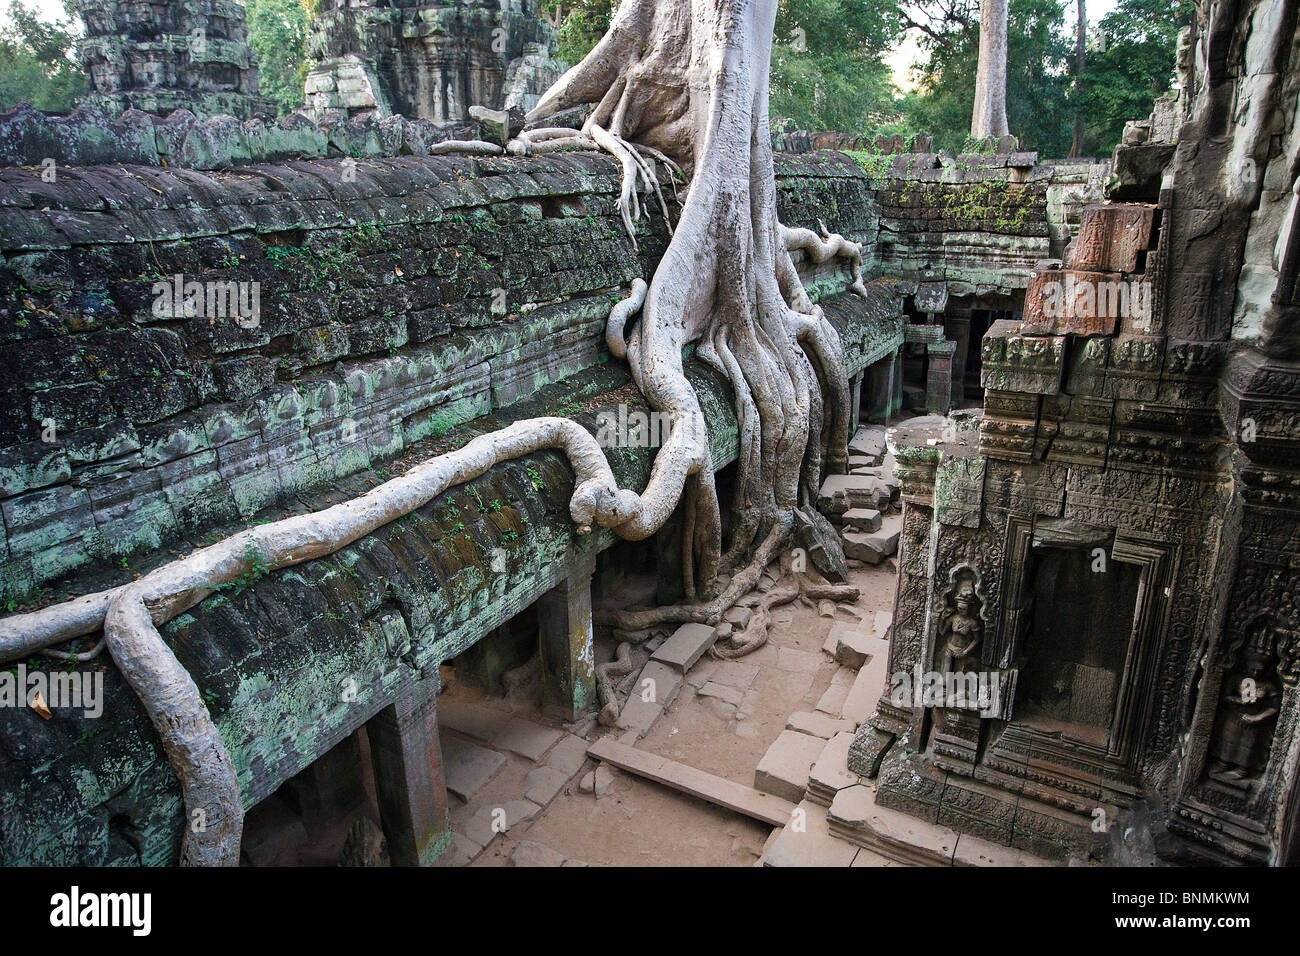 Cambodia Far East Asia Buddhism Angkor Thom temple religion cultural site culture stone figures figures world cultural - Stock Image